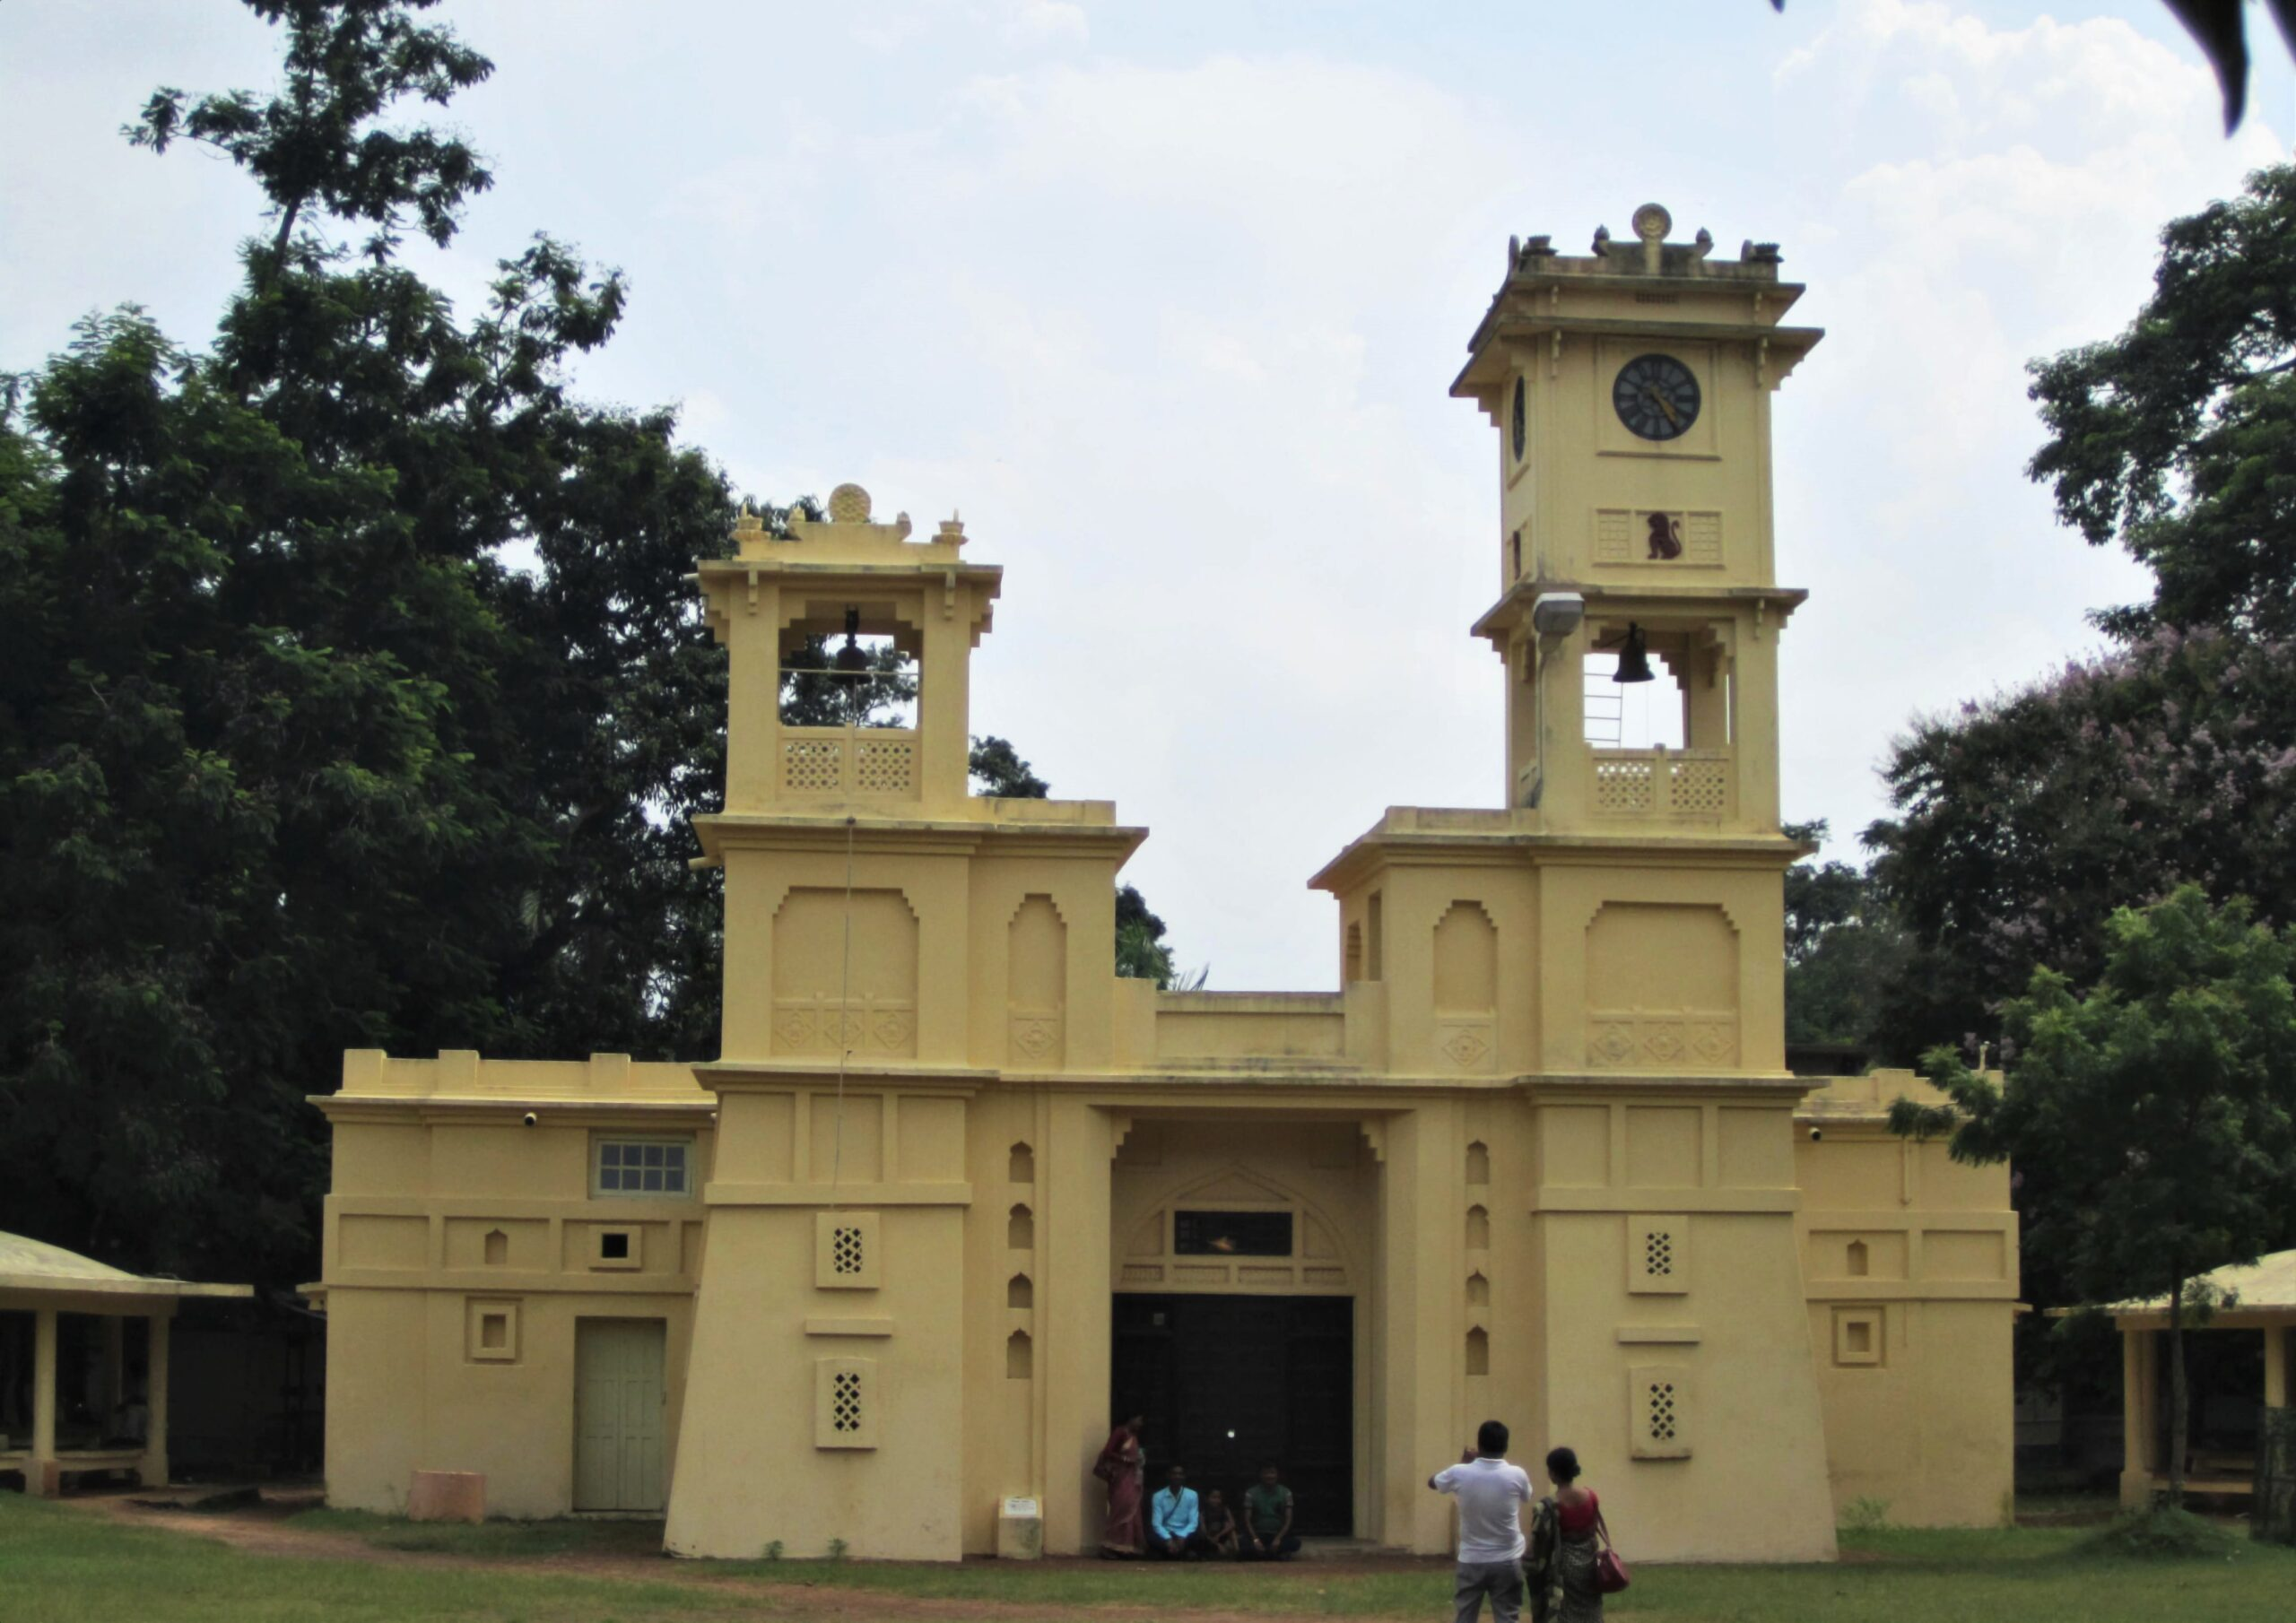 Singha Sadan - Main Office Building of the Old University. Tagore received D.Lit honour from Oxford University here in 1940.